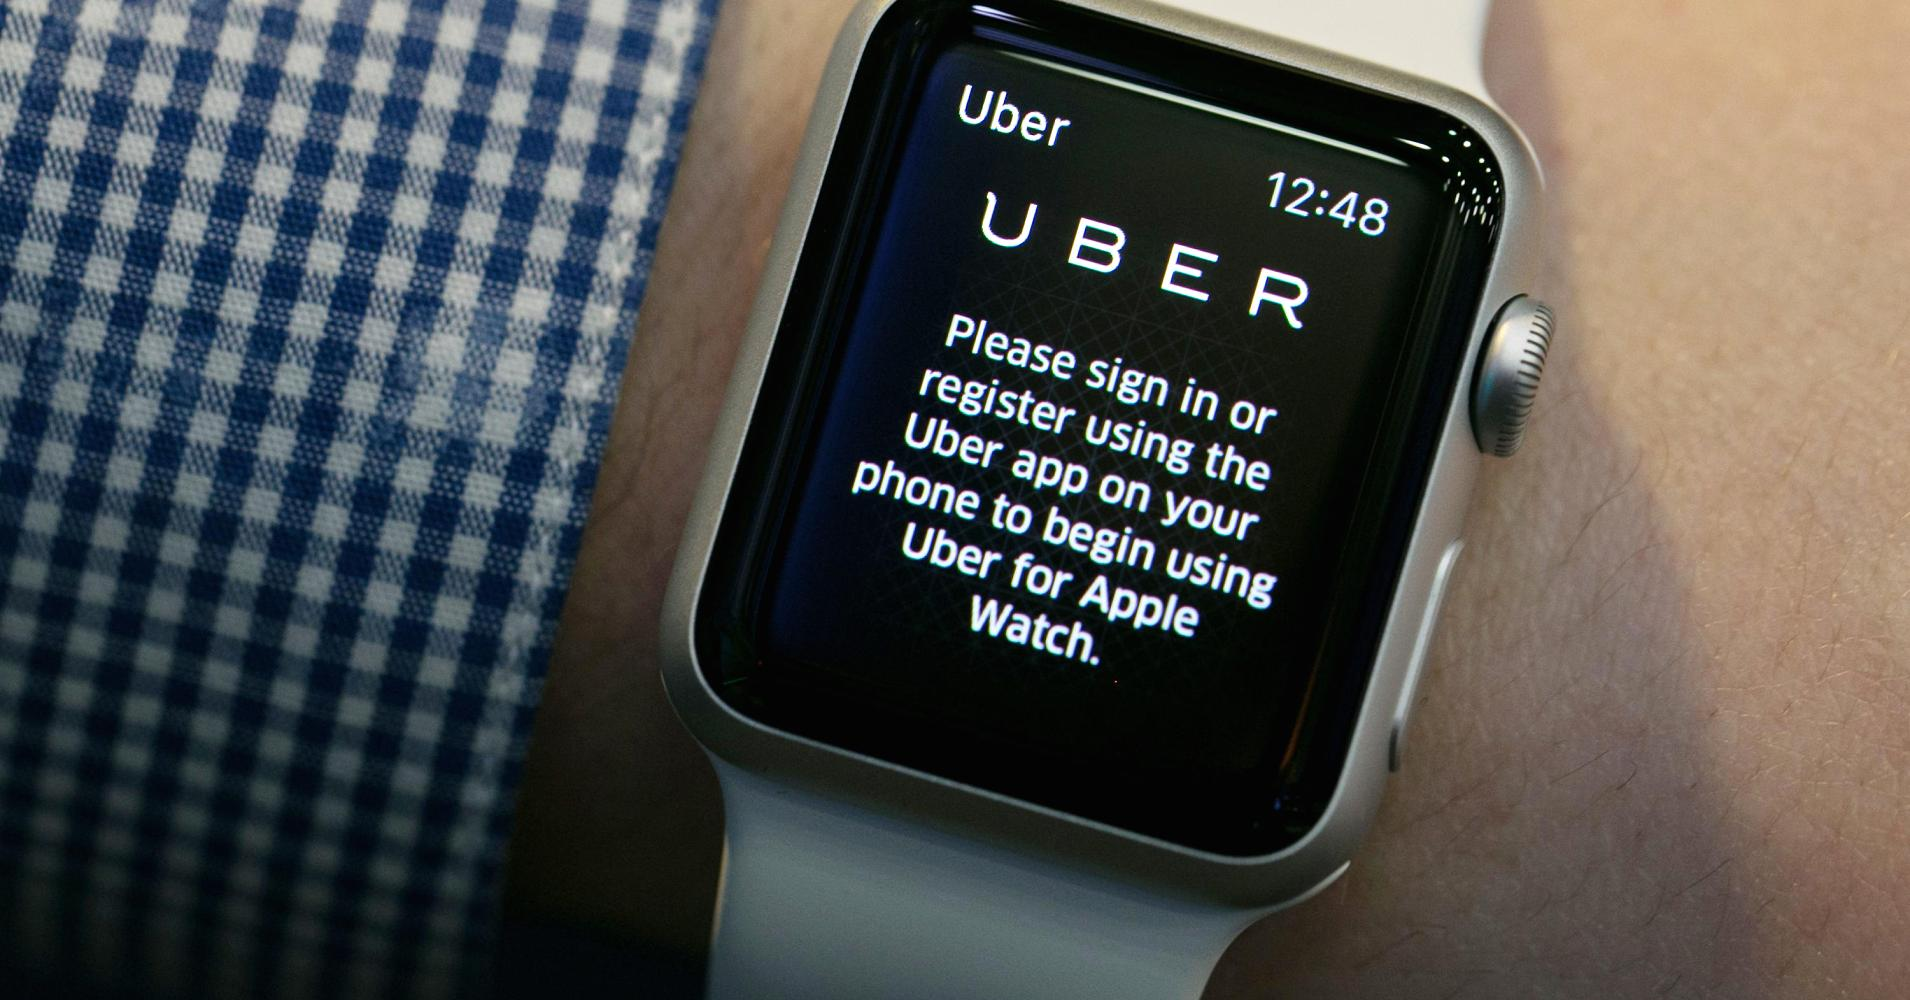 apple watch uber